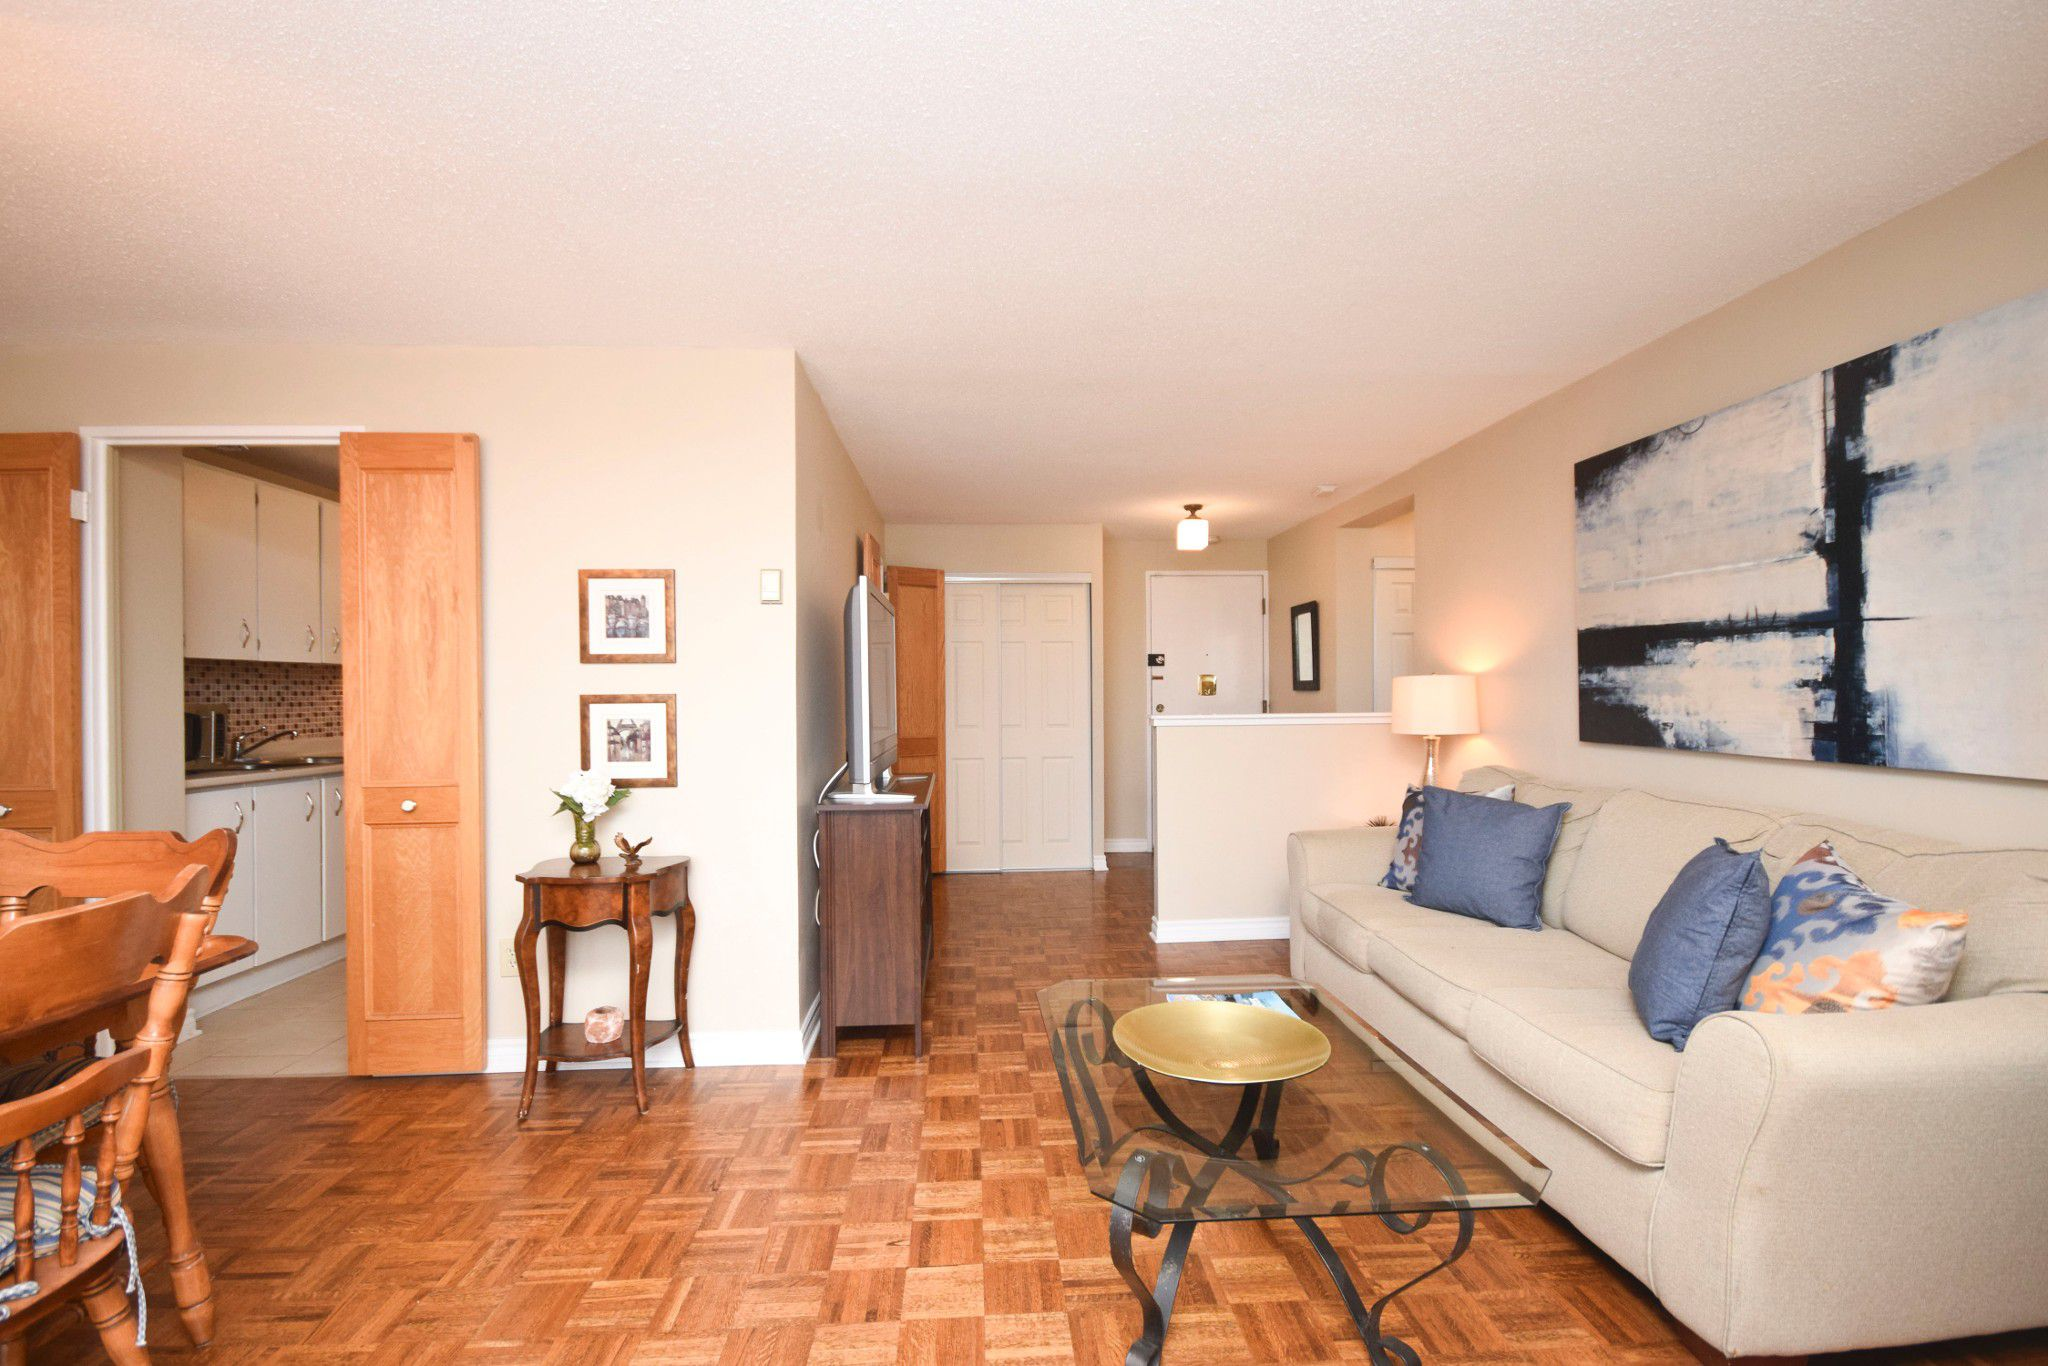 Photo 19: Photos: 515 1465 BASELINE Road in Ottawa: Copeland Park House for sale : MLS®# 1133550